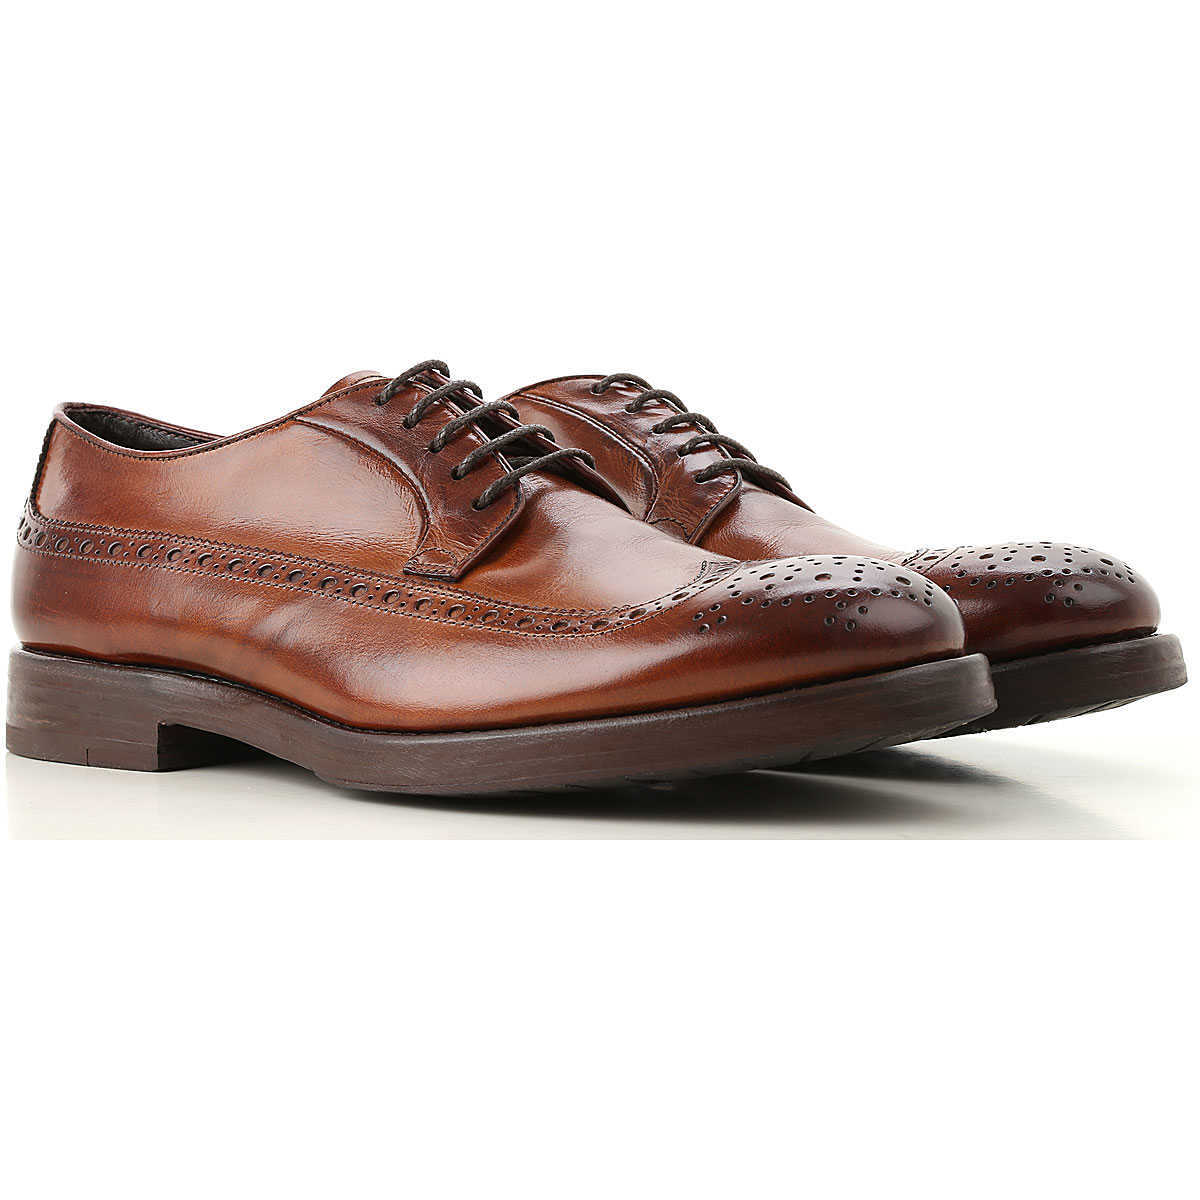 Henderson Lace Up Shoes for Men Oxfords 10 10.5 11 7.5 8 8.5 9 Derbies and Brogues On Sale UK - GOOFASH